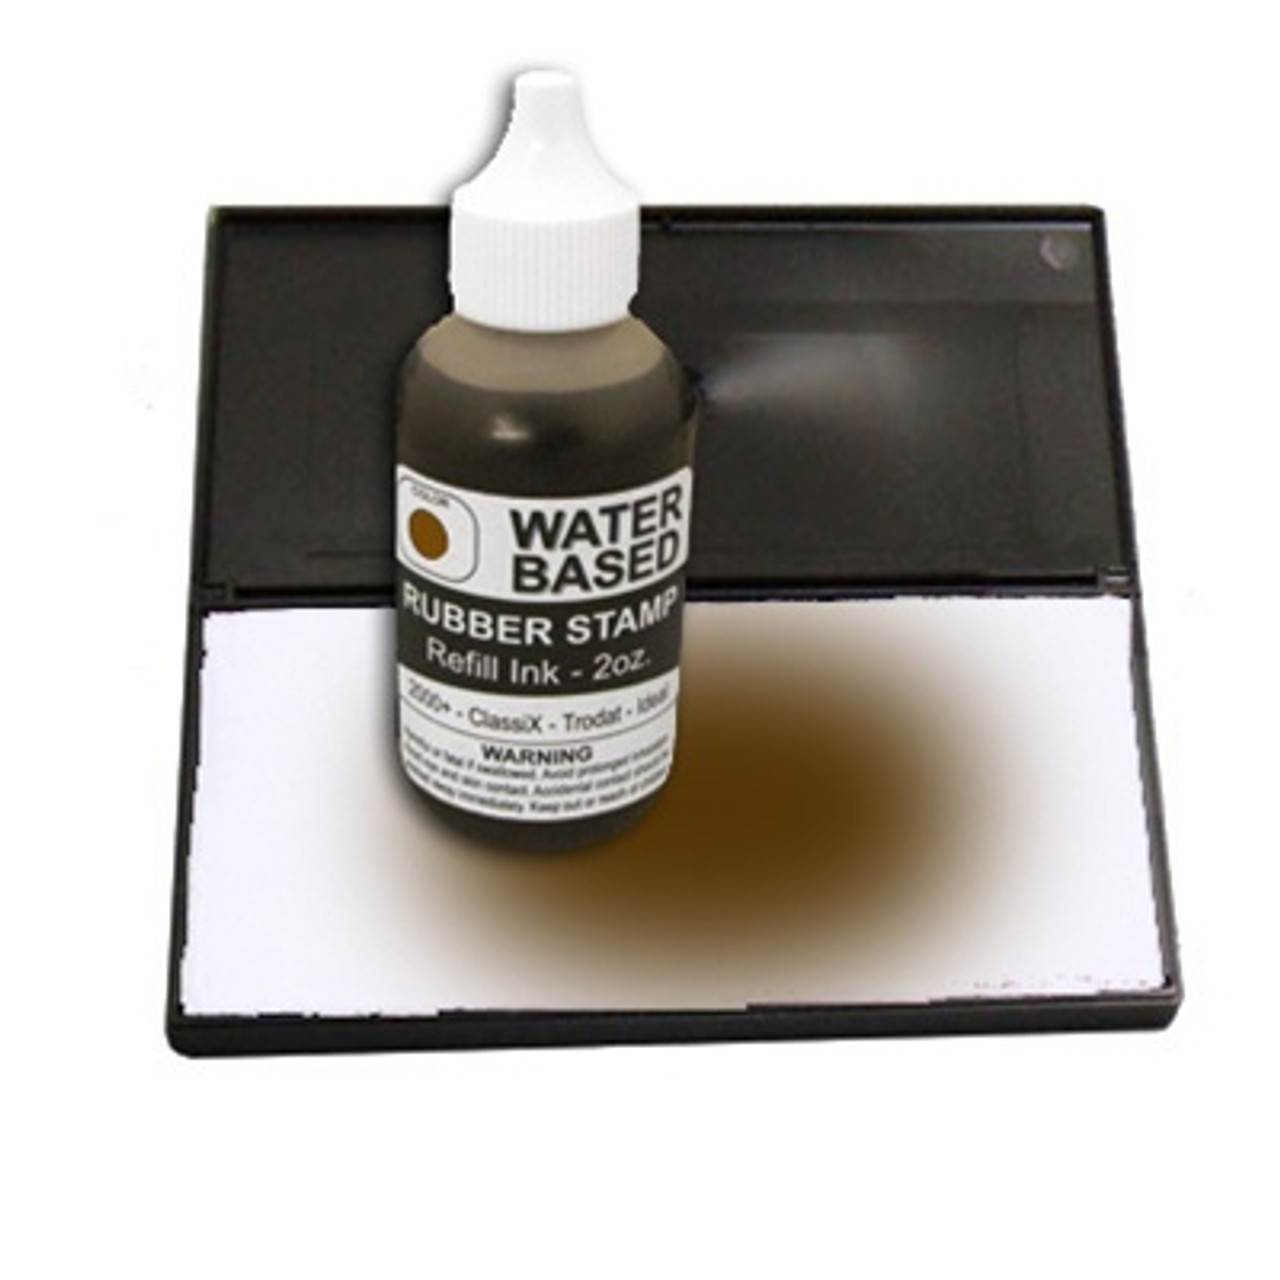 Dry stamp pad with brown ink bottle